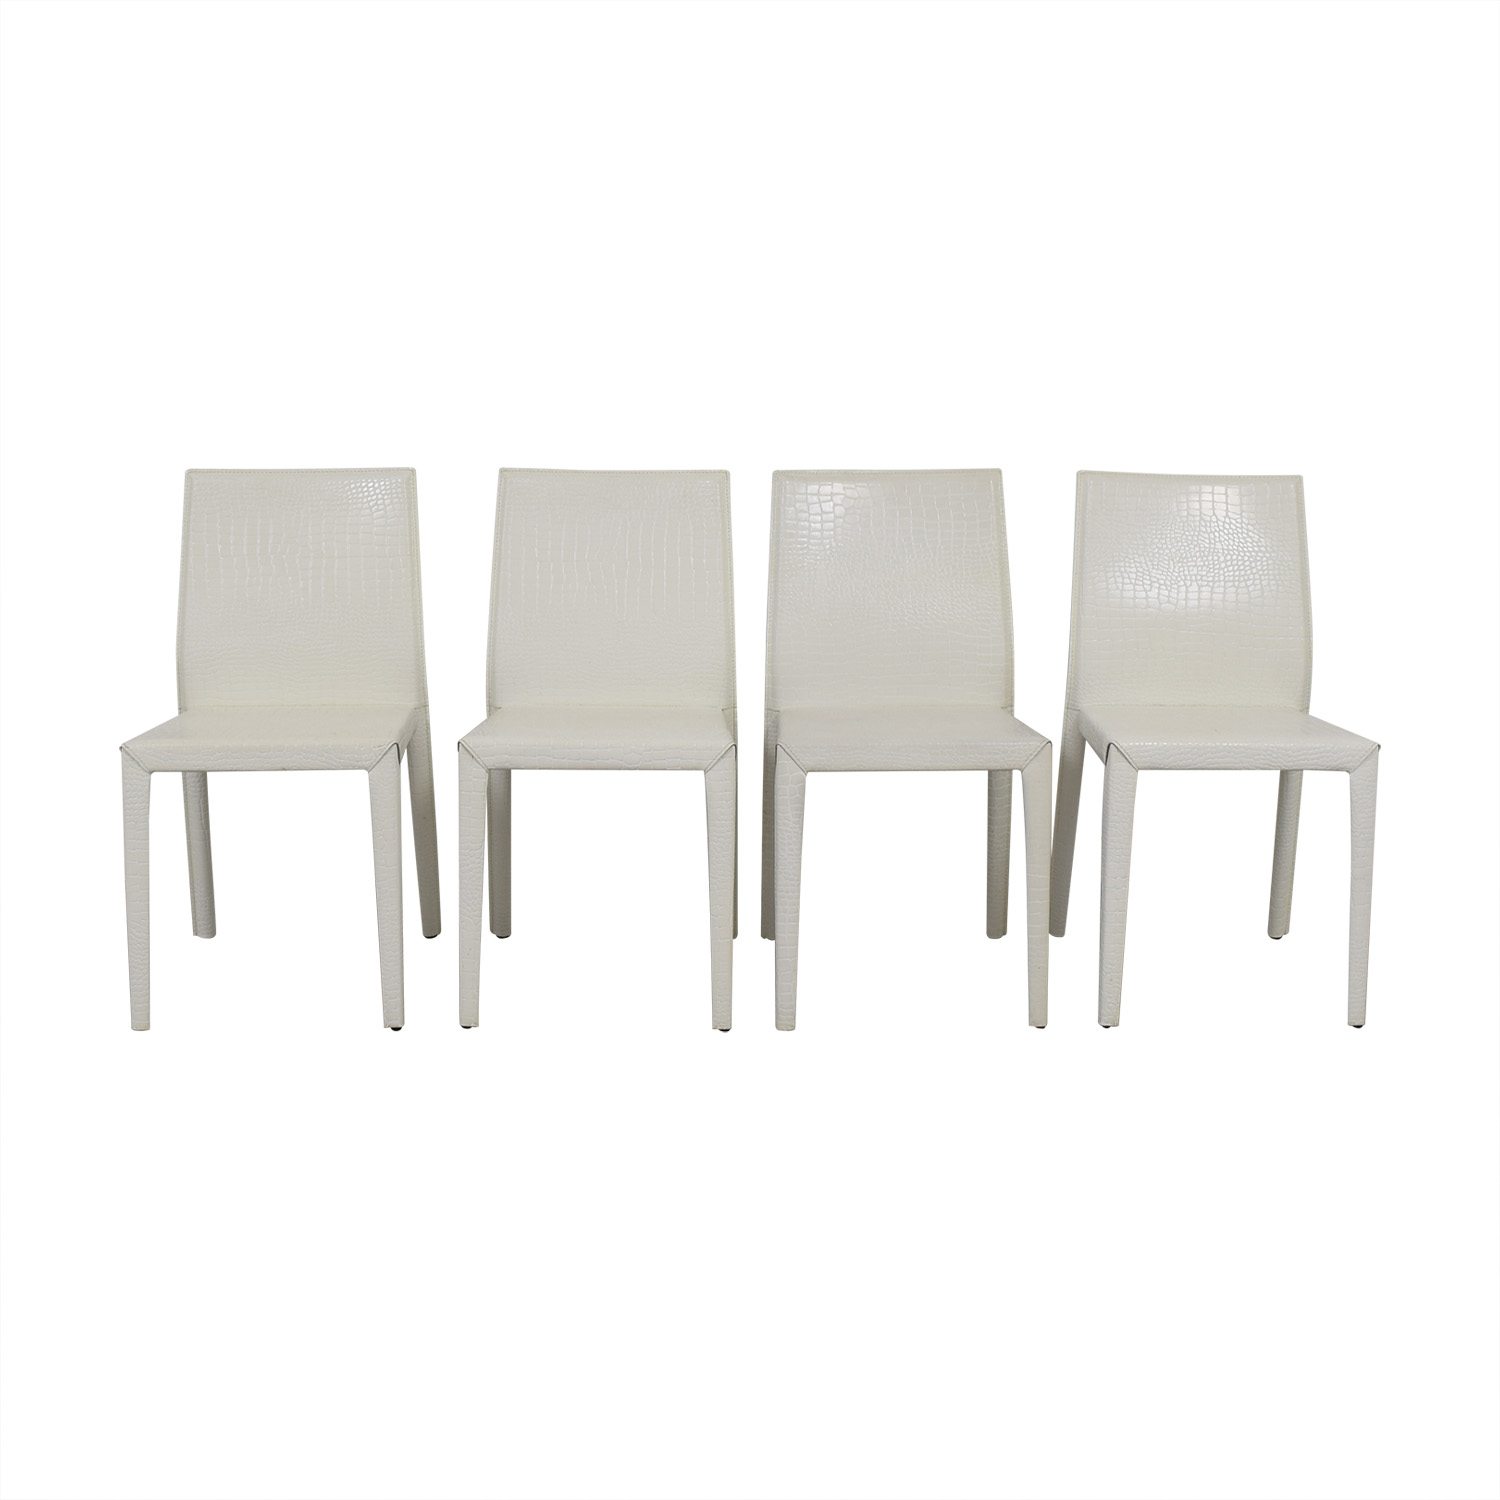 Nicoletti Nicoletti White Leather Embossed Croc Leather Dining Chairs White